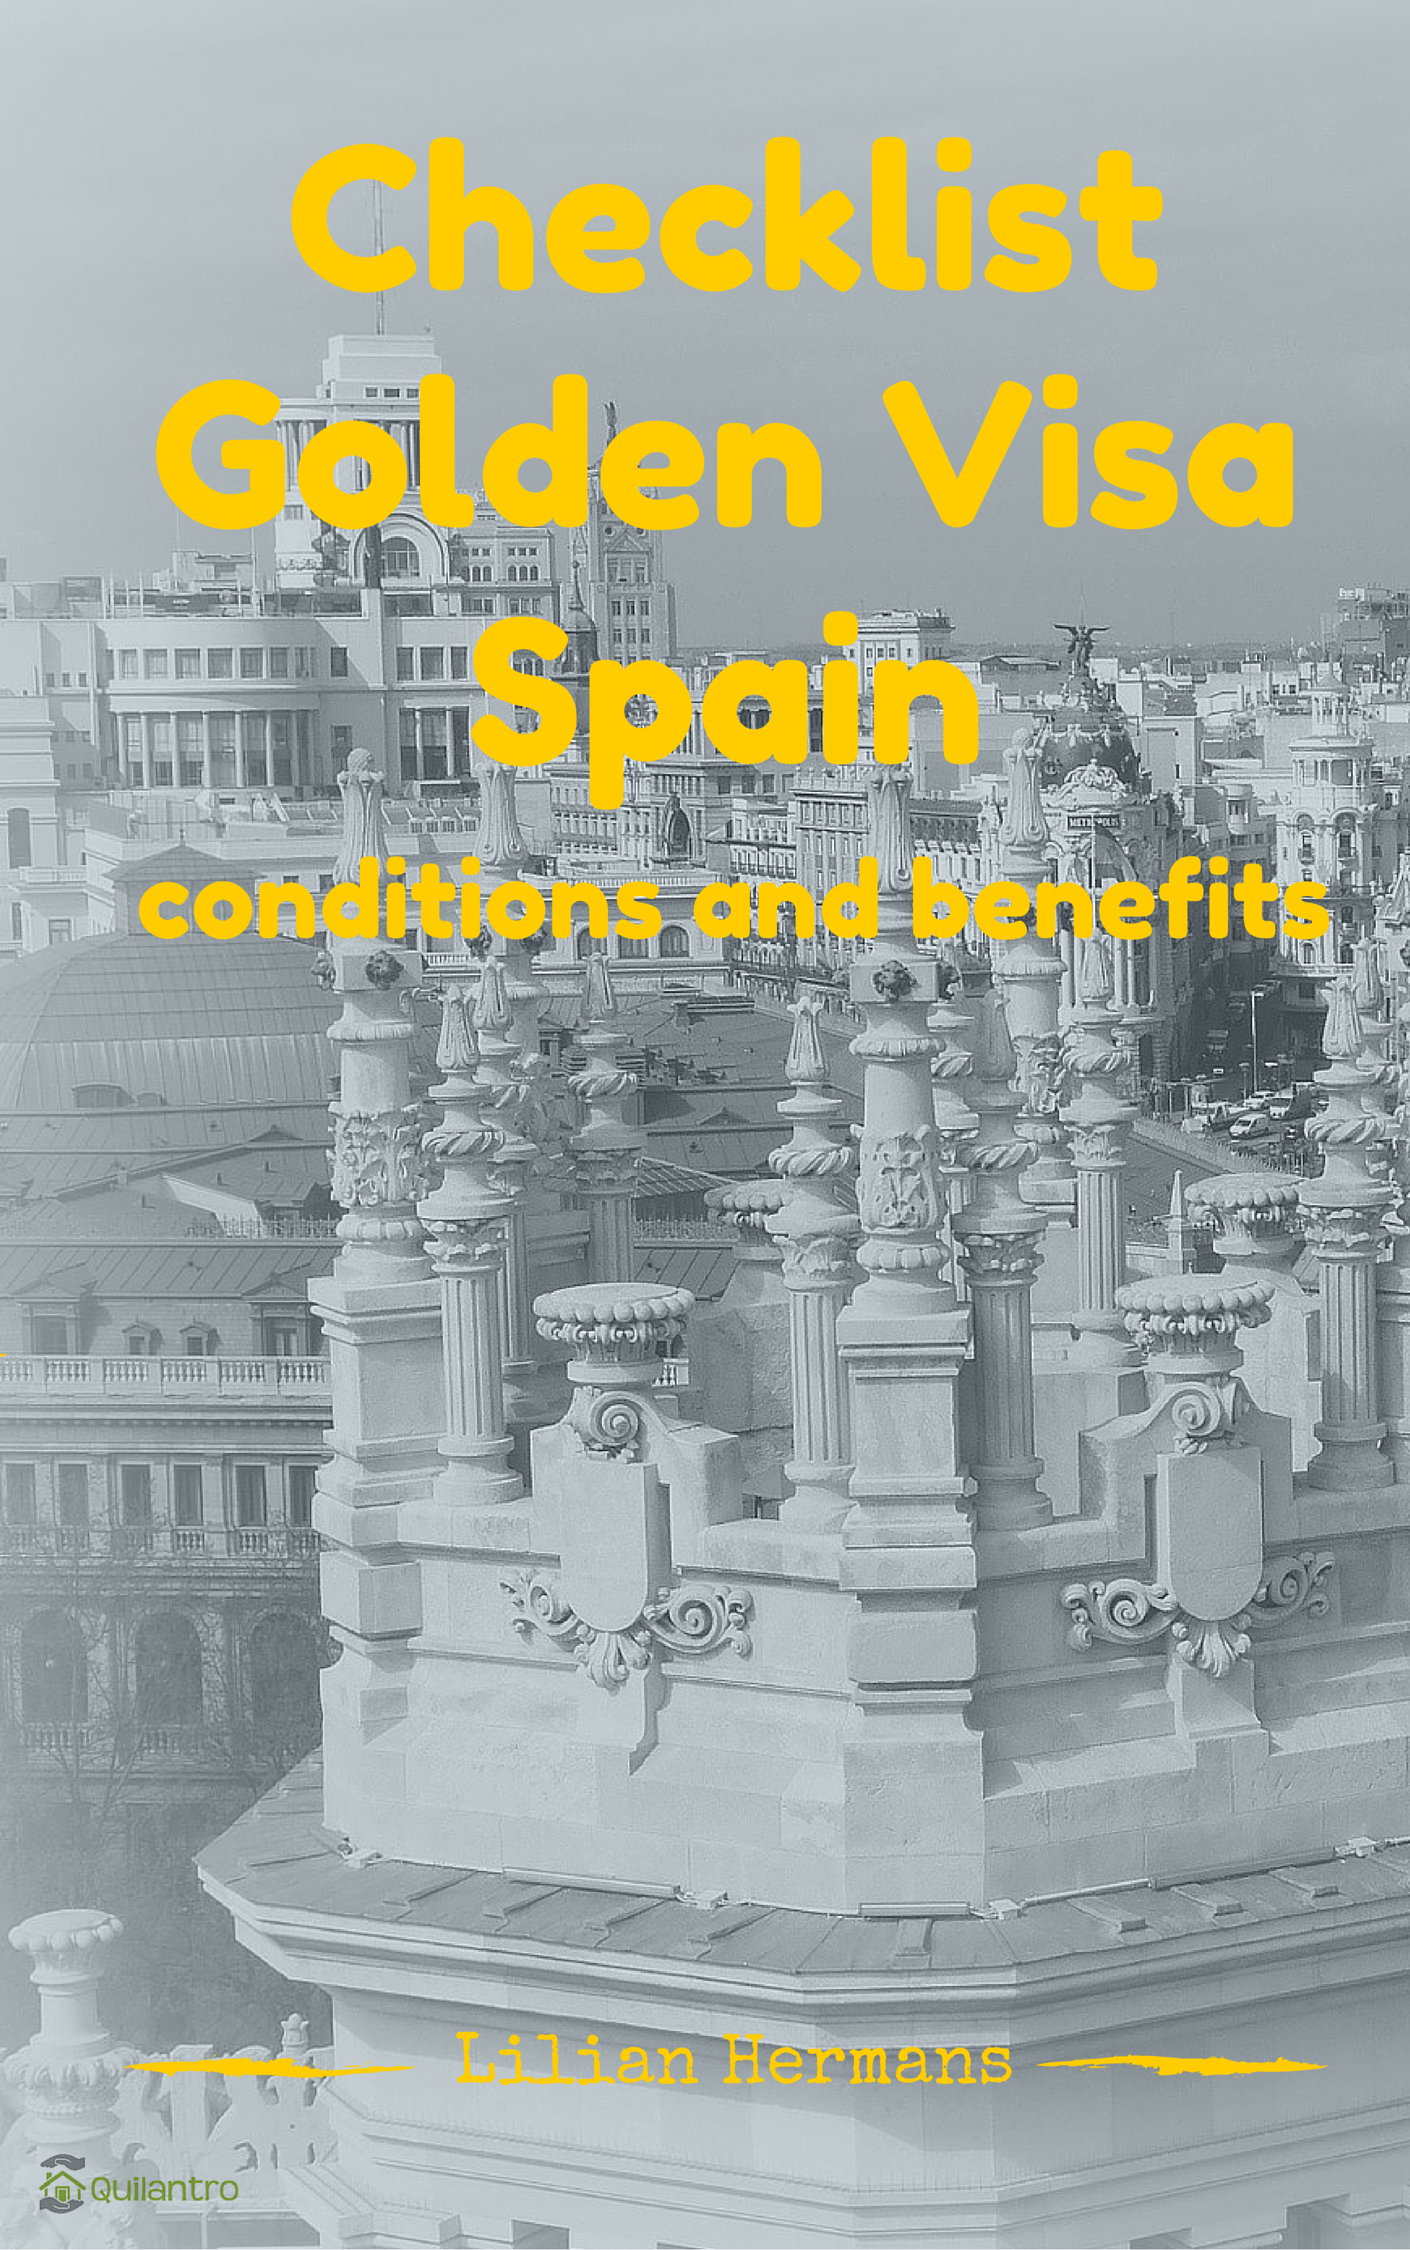 checklist golden visa spain